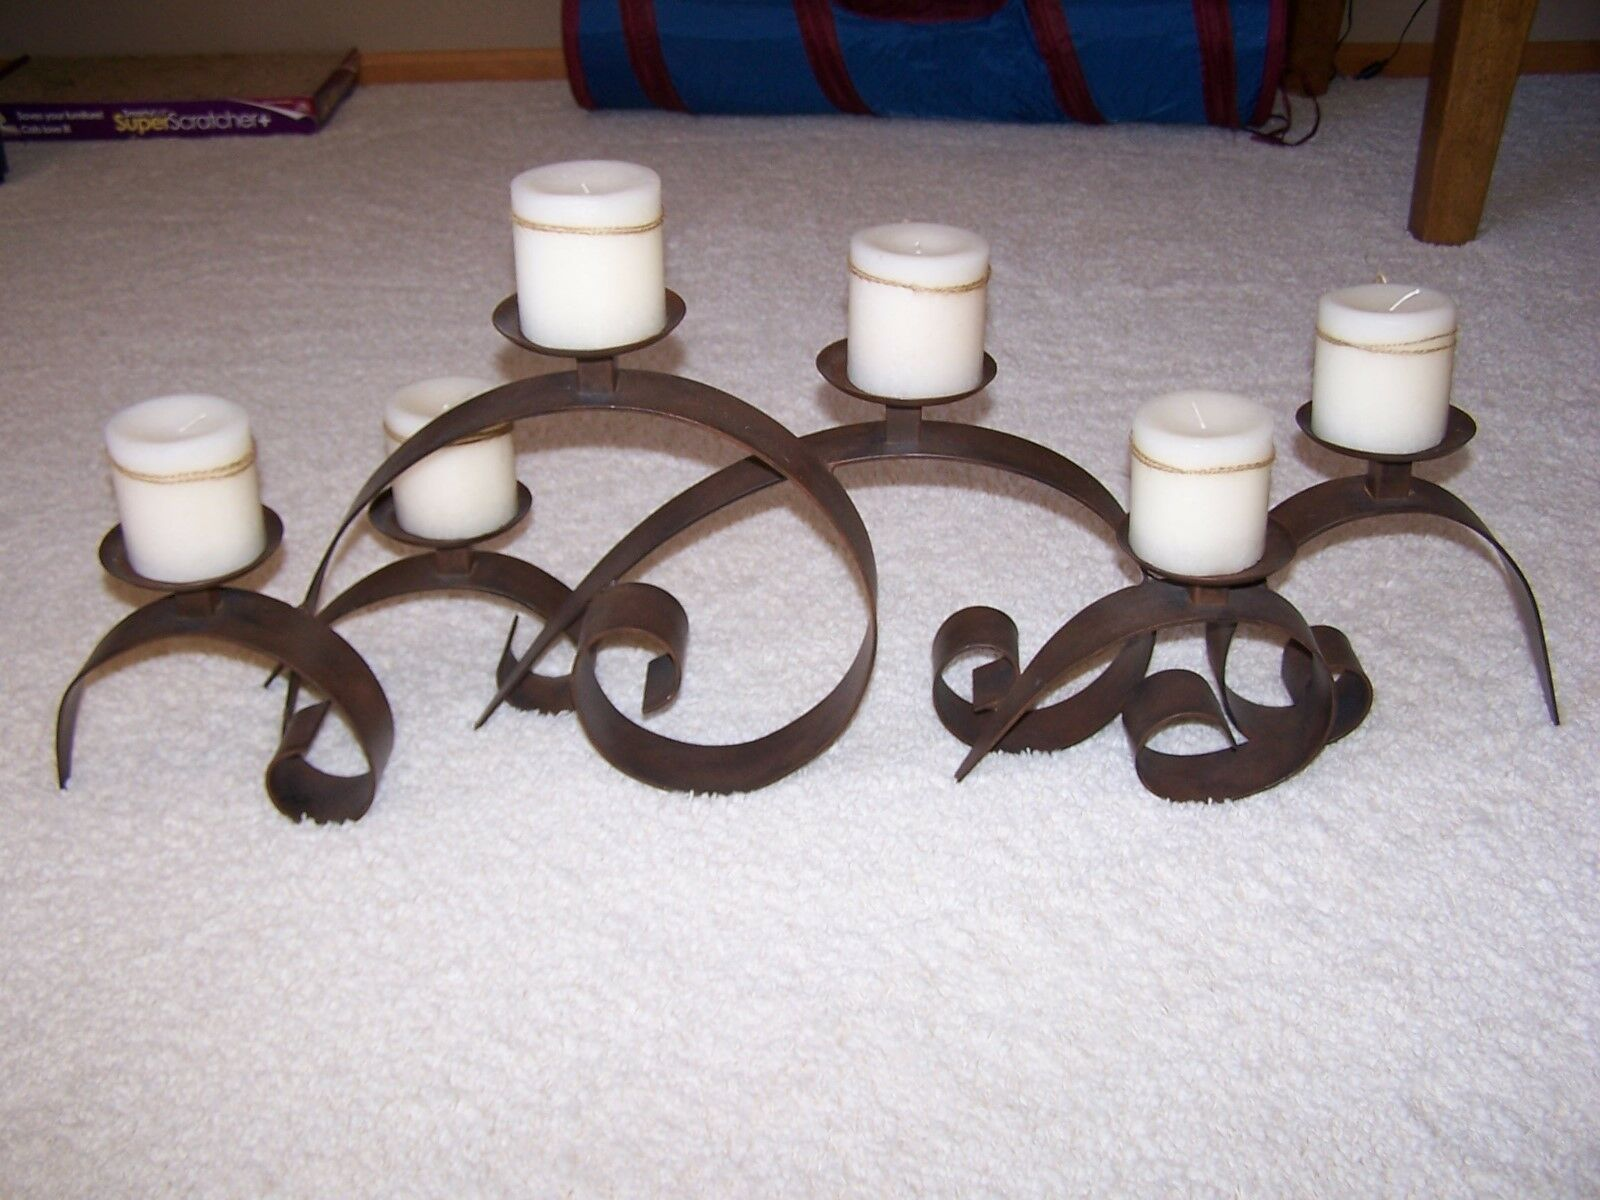 Bronze Candle Holder with 6 Cream Candles from Woodleys